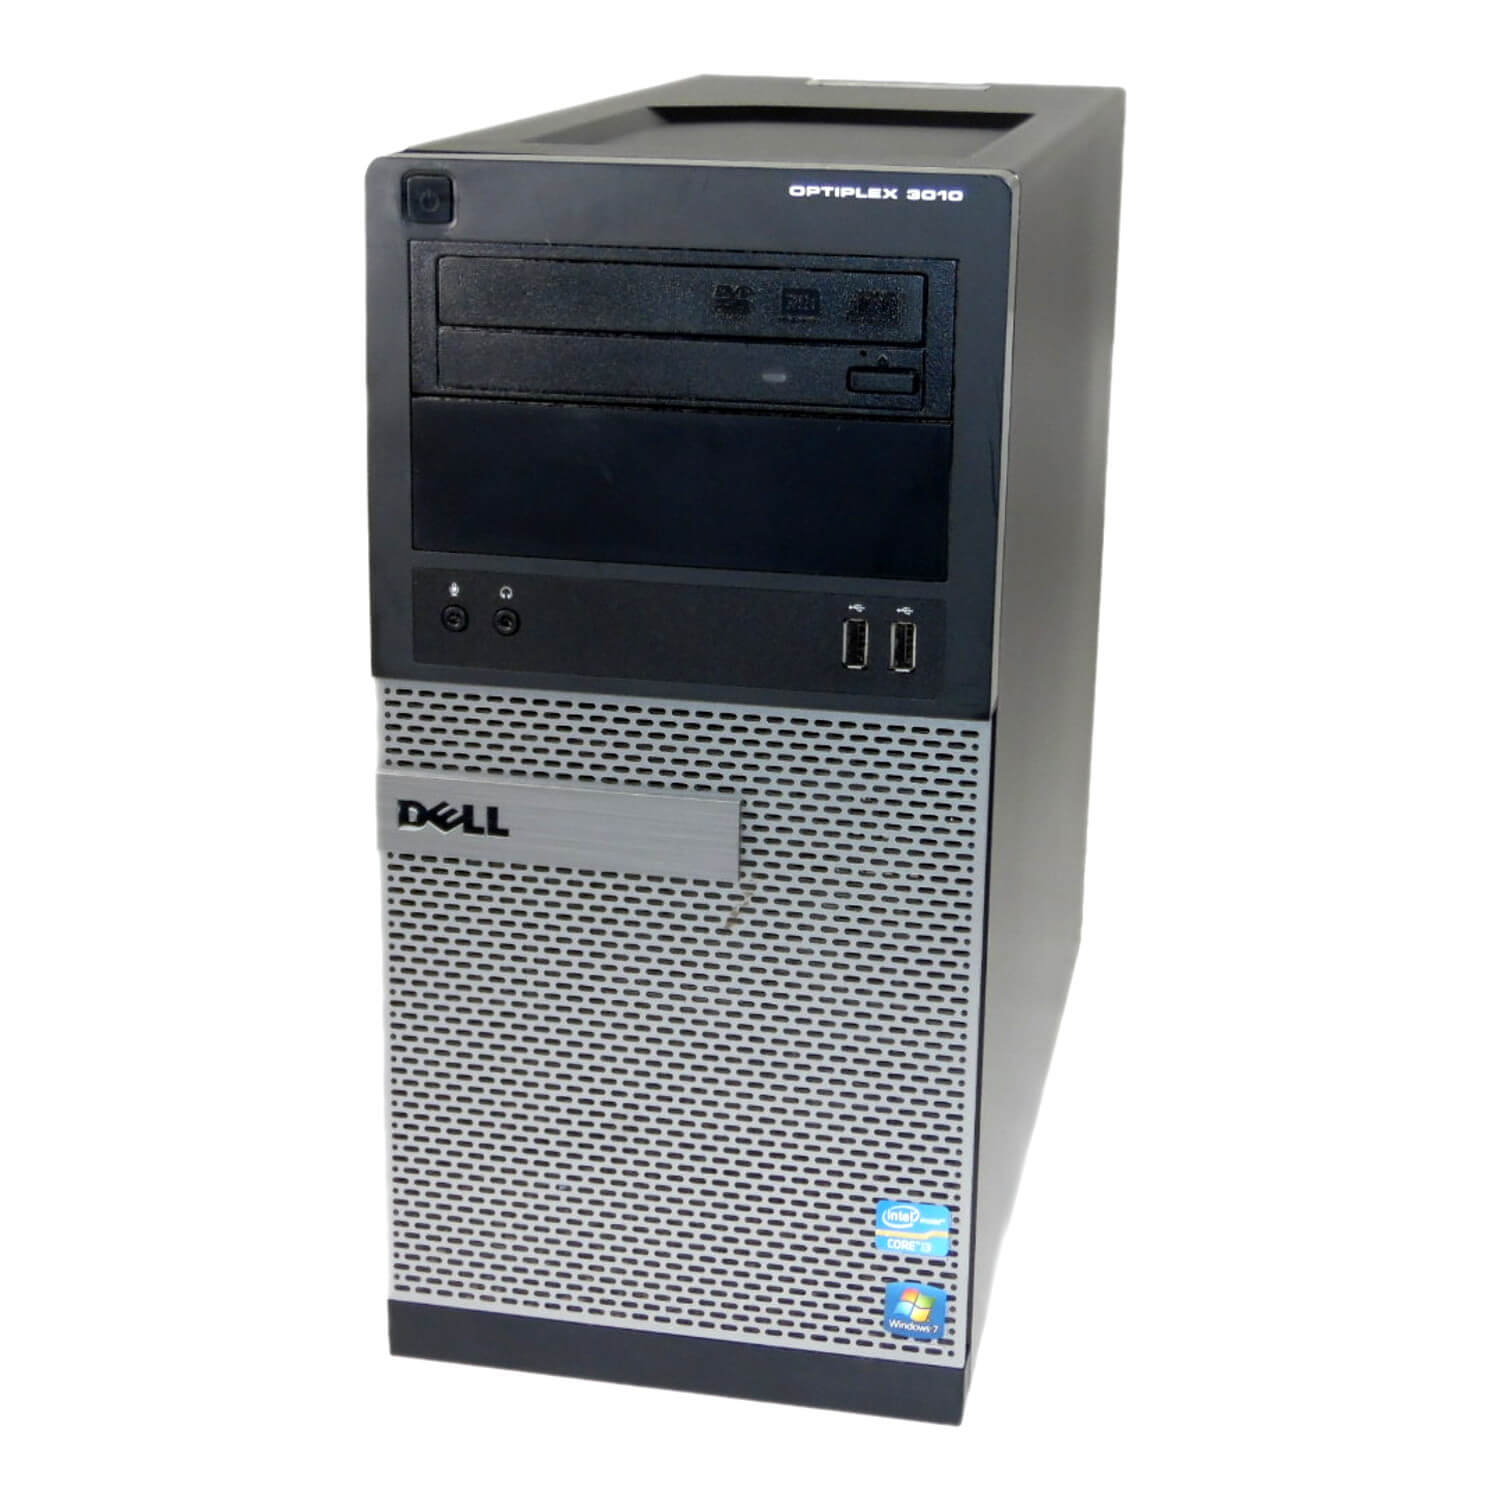 DELL 3010 TOWER I5-3470 3.2 / 8192 MB DDR3 / 500 GB / DVD-RW / WINDOWS 10 PRO